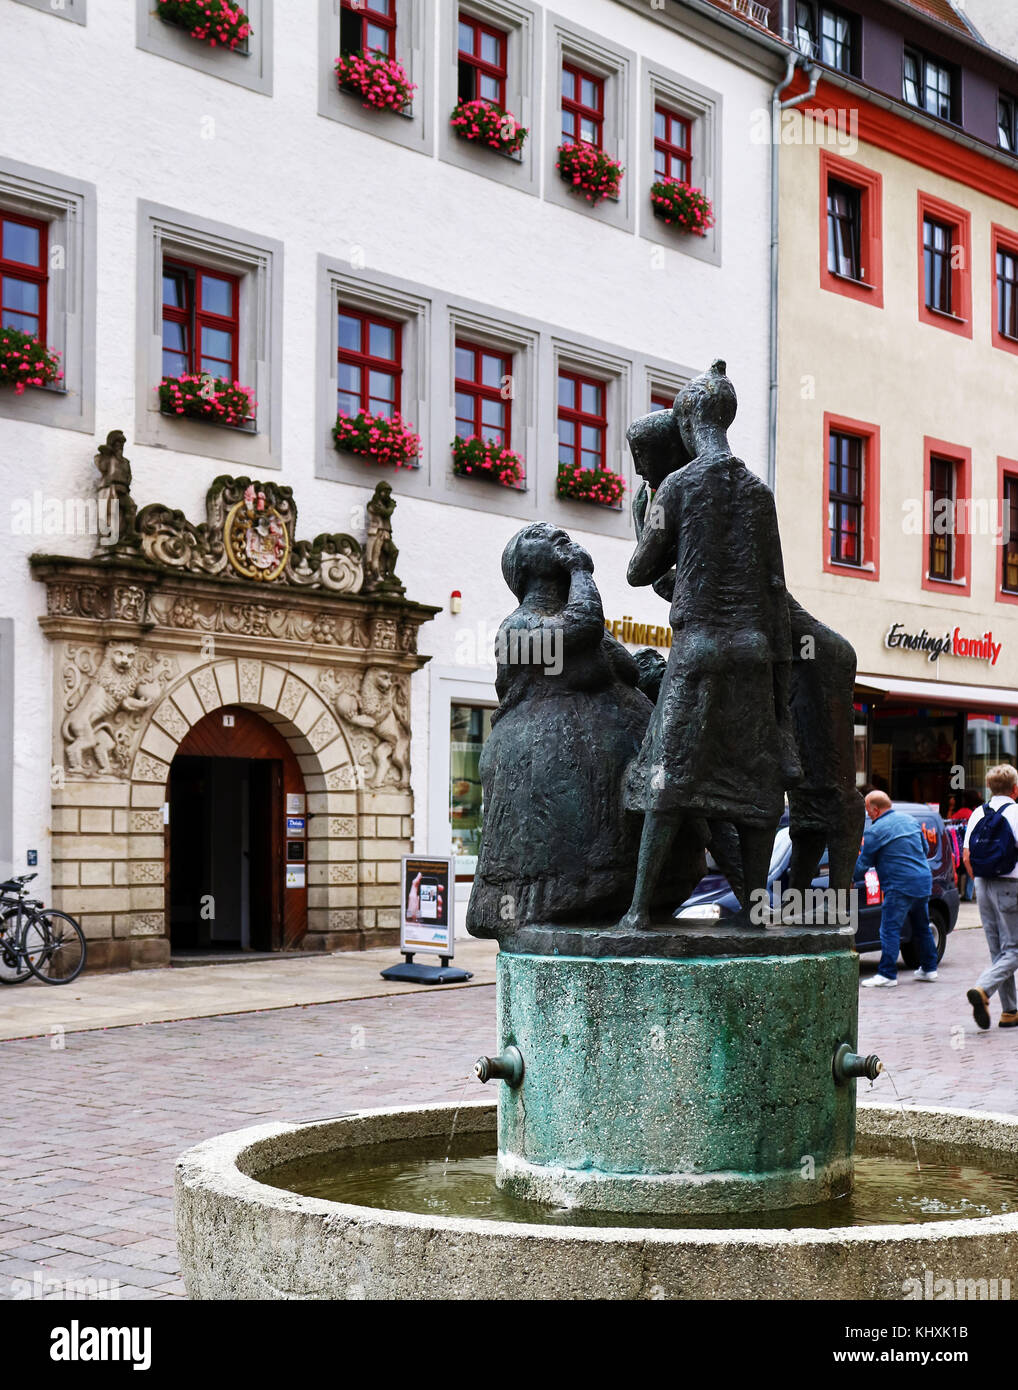 Europe, Germany, Saxony, Freiberg, the old town, the Obermarkt square;  fontaine - Stock Image